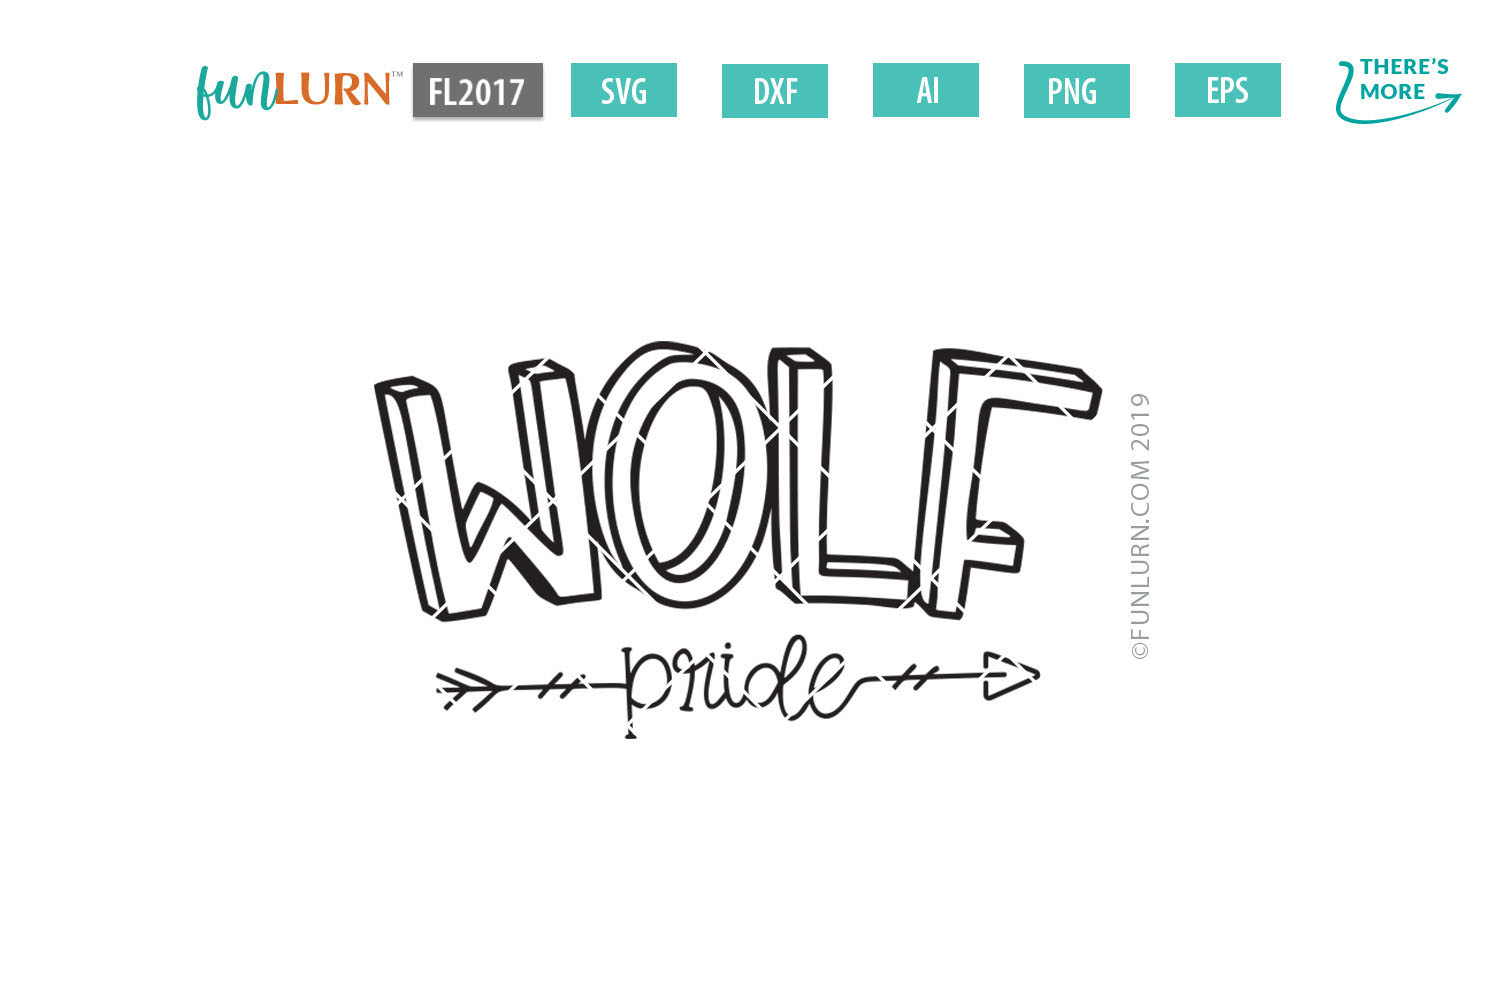 Wolf Pride Team SVG Cut File example image 2